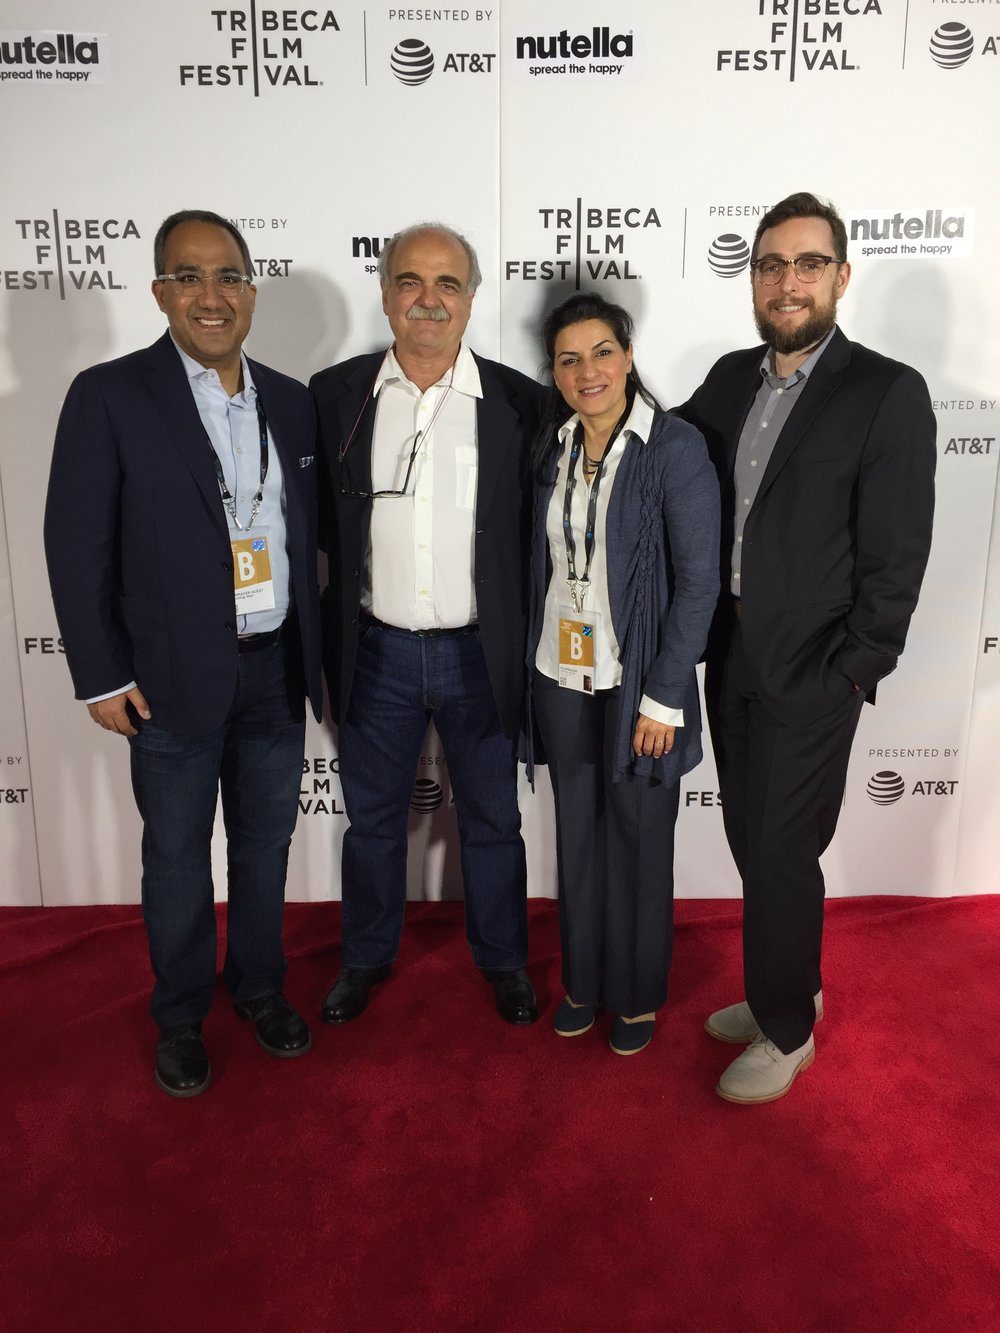 From left to right: Sa'ad Shah (Producer),Franco Pagetti, Aeyliya Husain (Director/Producer), Ivan Verlaan (Director of Photography)